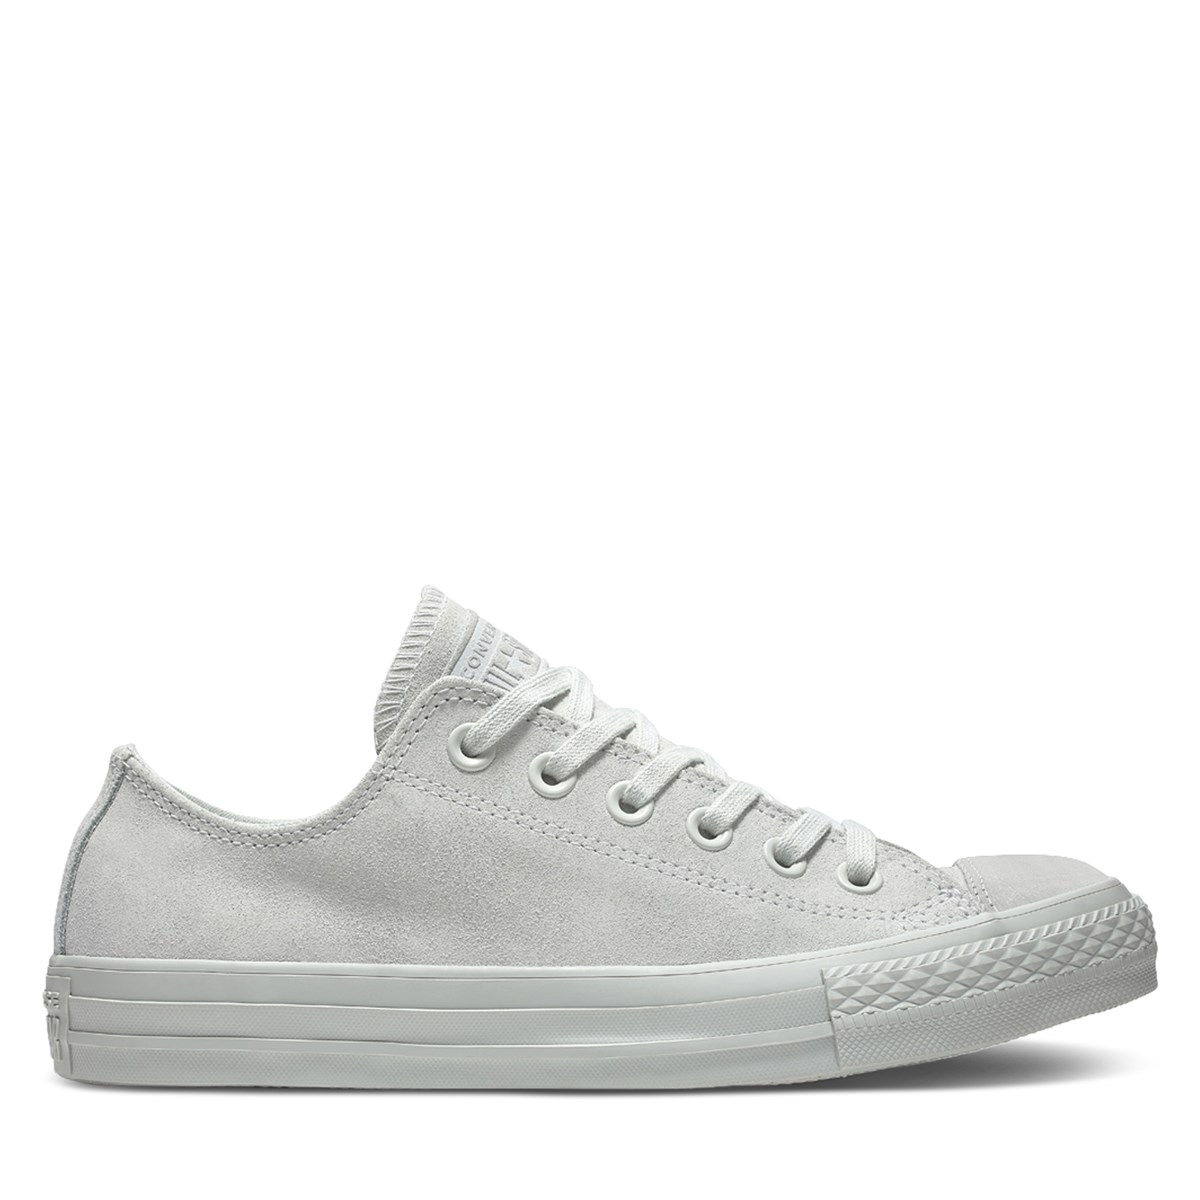 Women s Chuck Taylor OX MONO Sneaker in Silver. Previous. default view ... f9a8c4c09